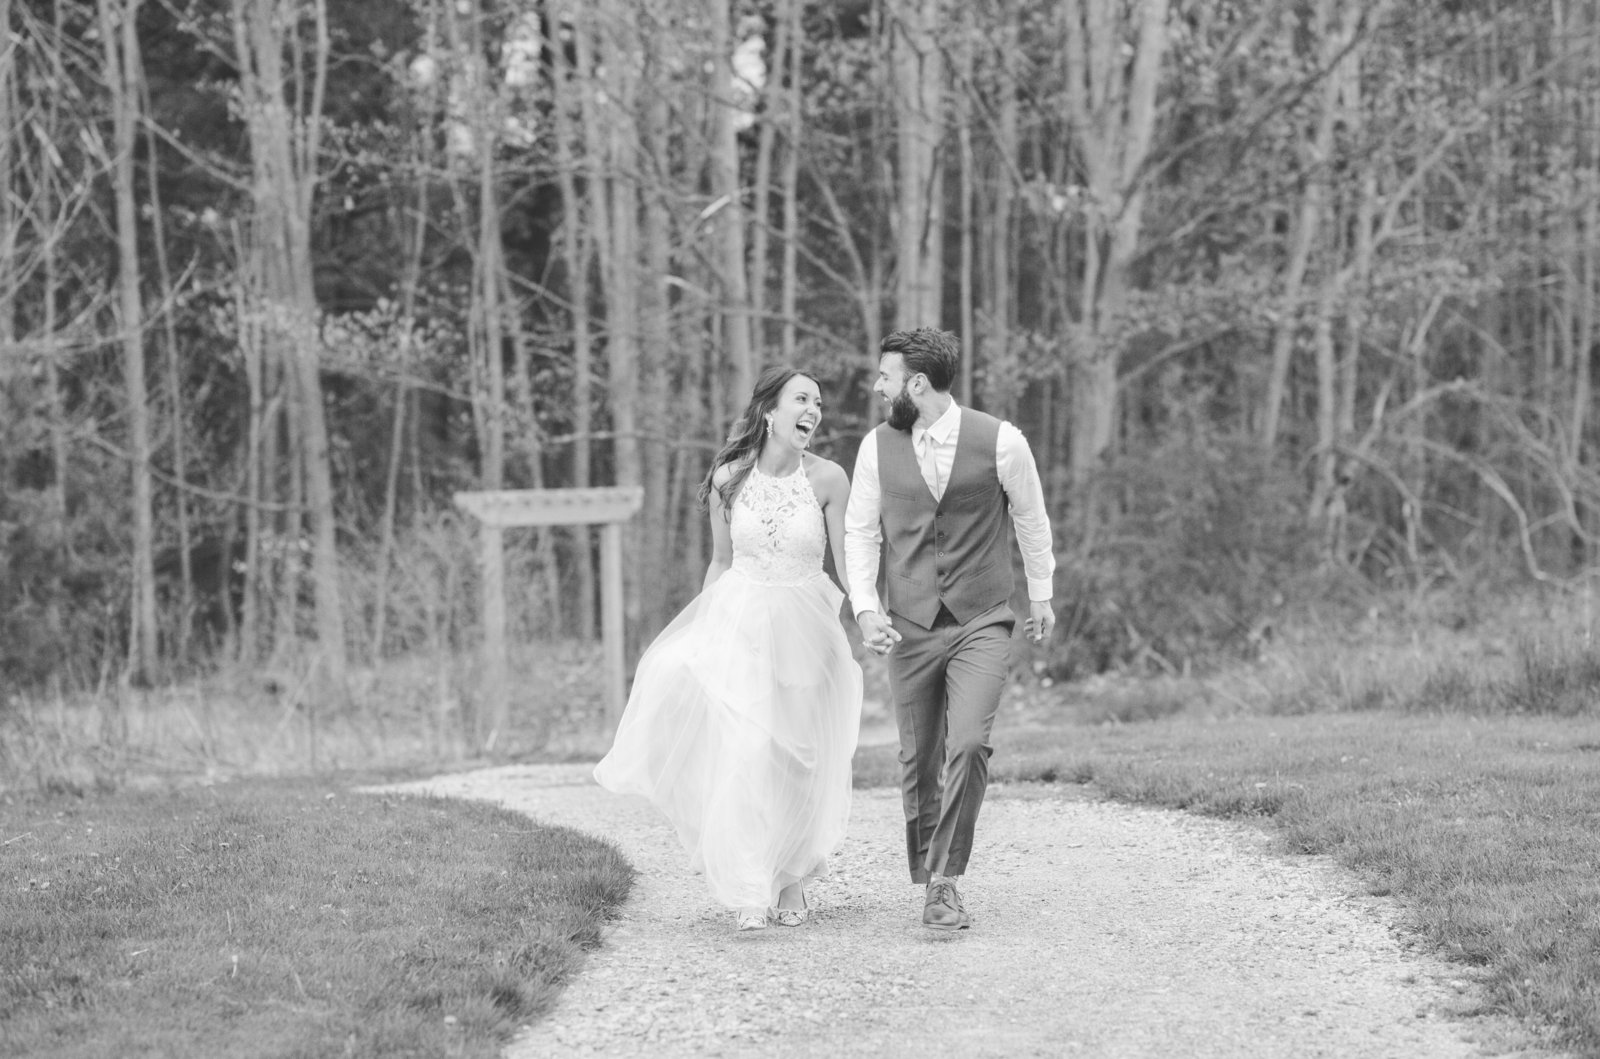 medina-allardale-park-wedding-allison-ewing-photography-004-1